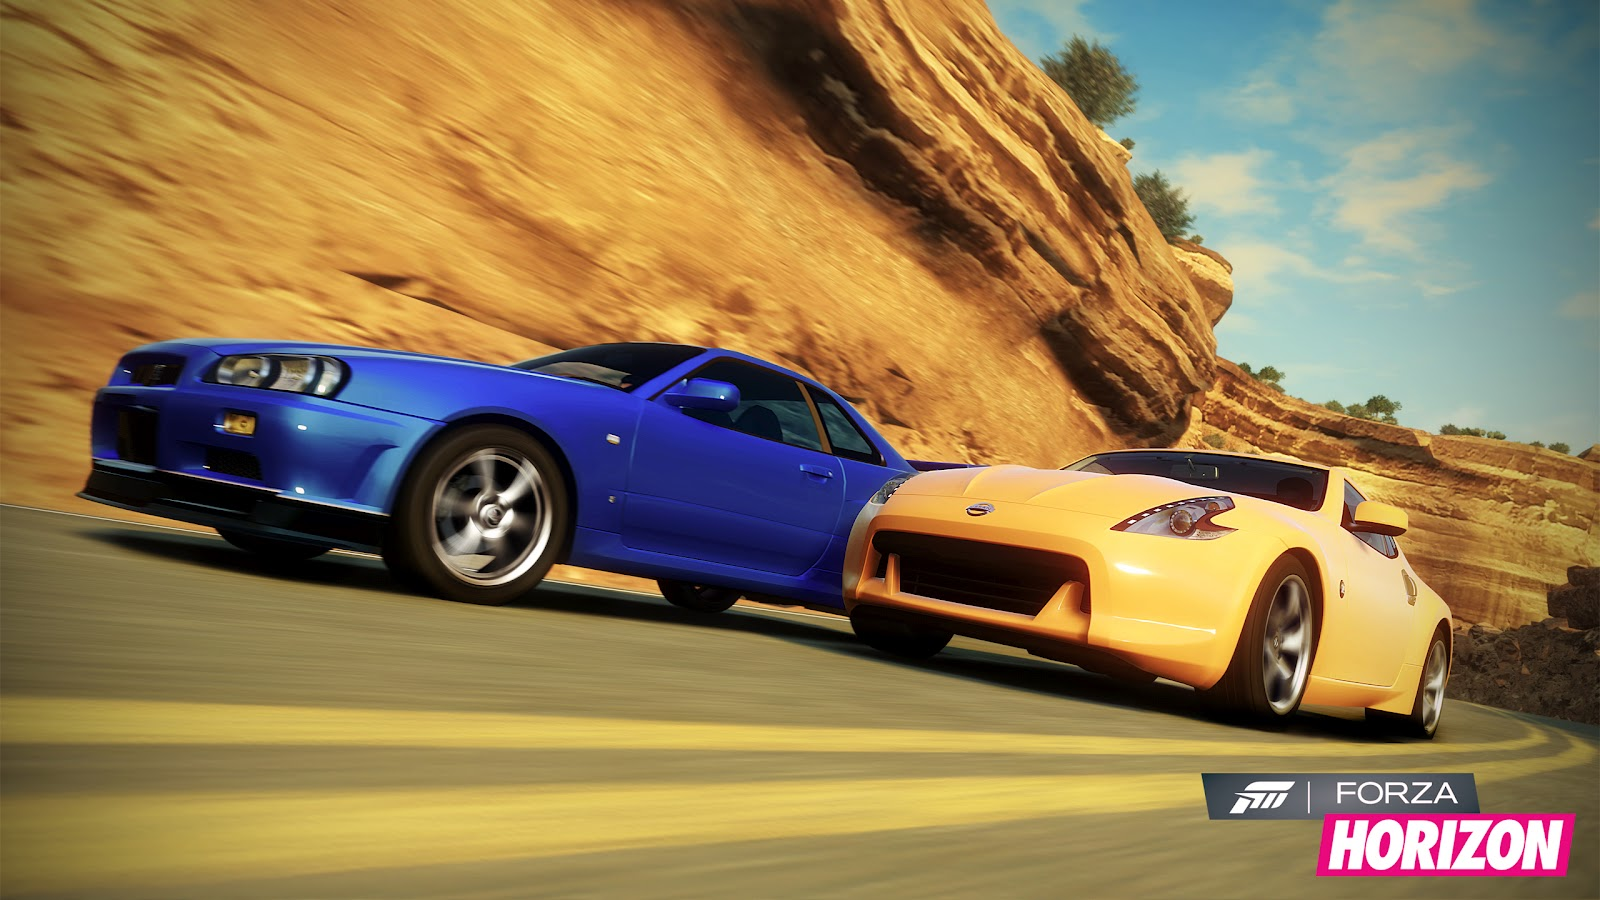 Forza Horizon HD & Widescreen Wallpaper 0.159906065037957